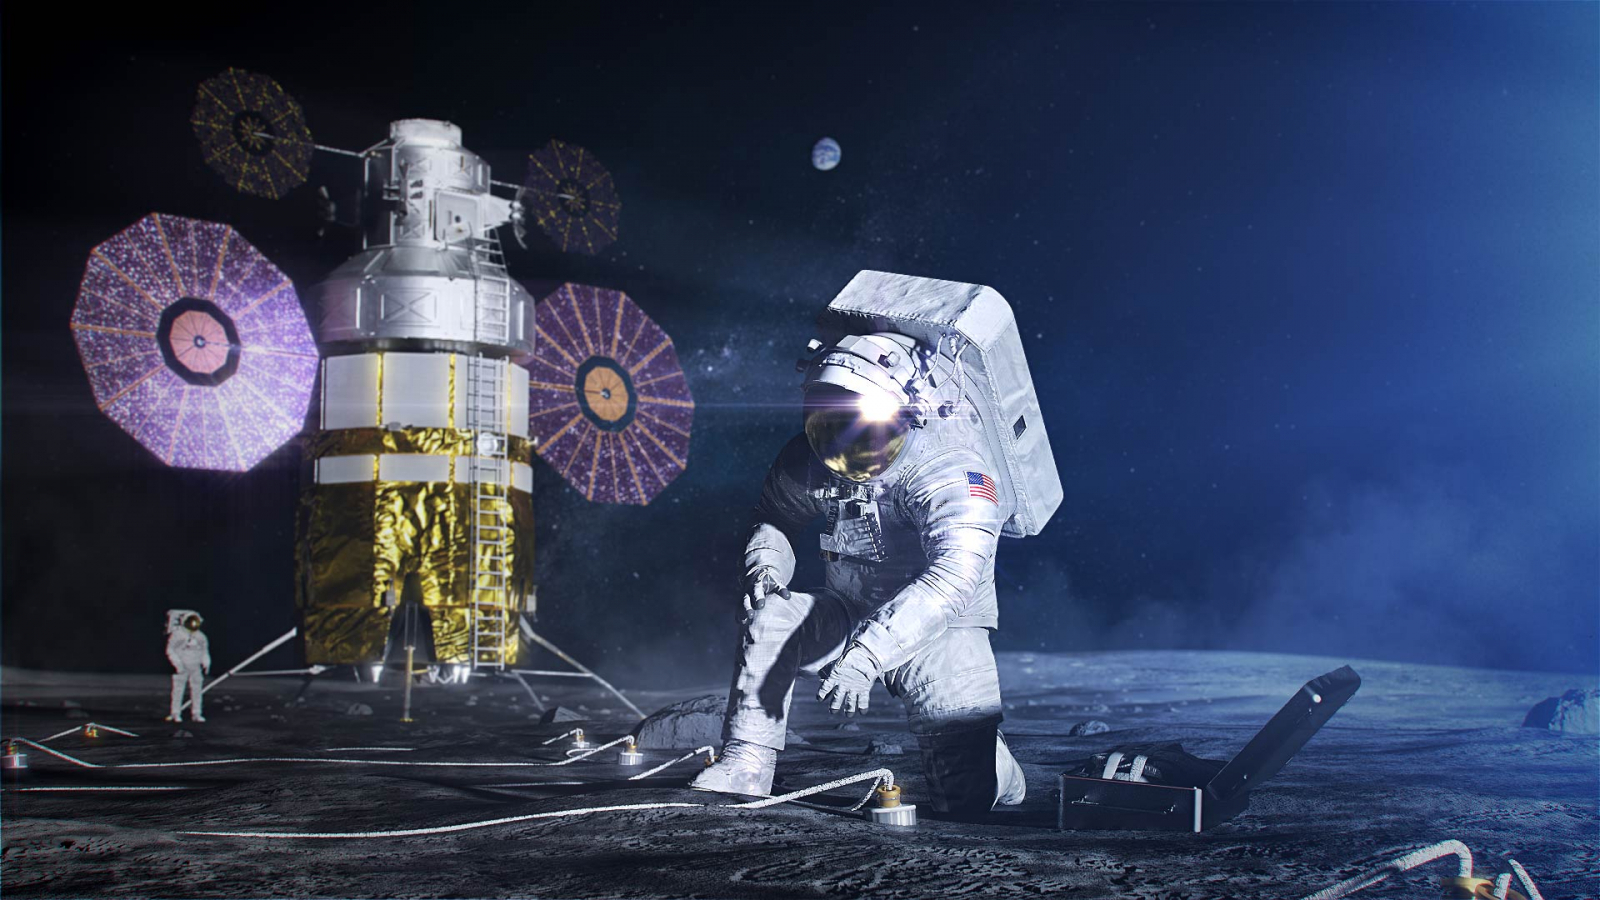 NASA reveals how it will maintain sustained human presence on the Moon for Artemis program